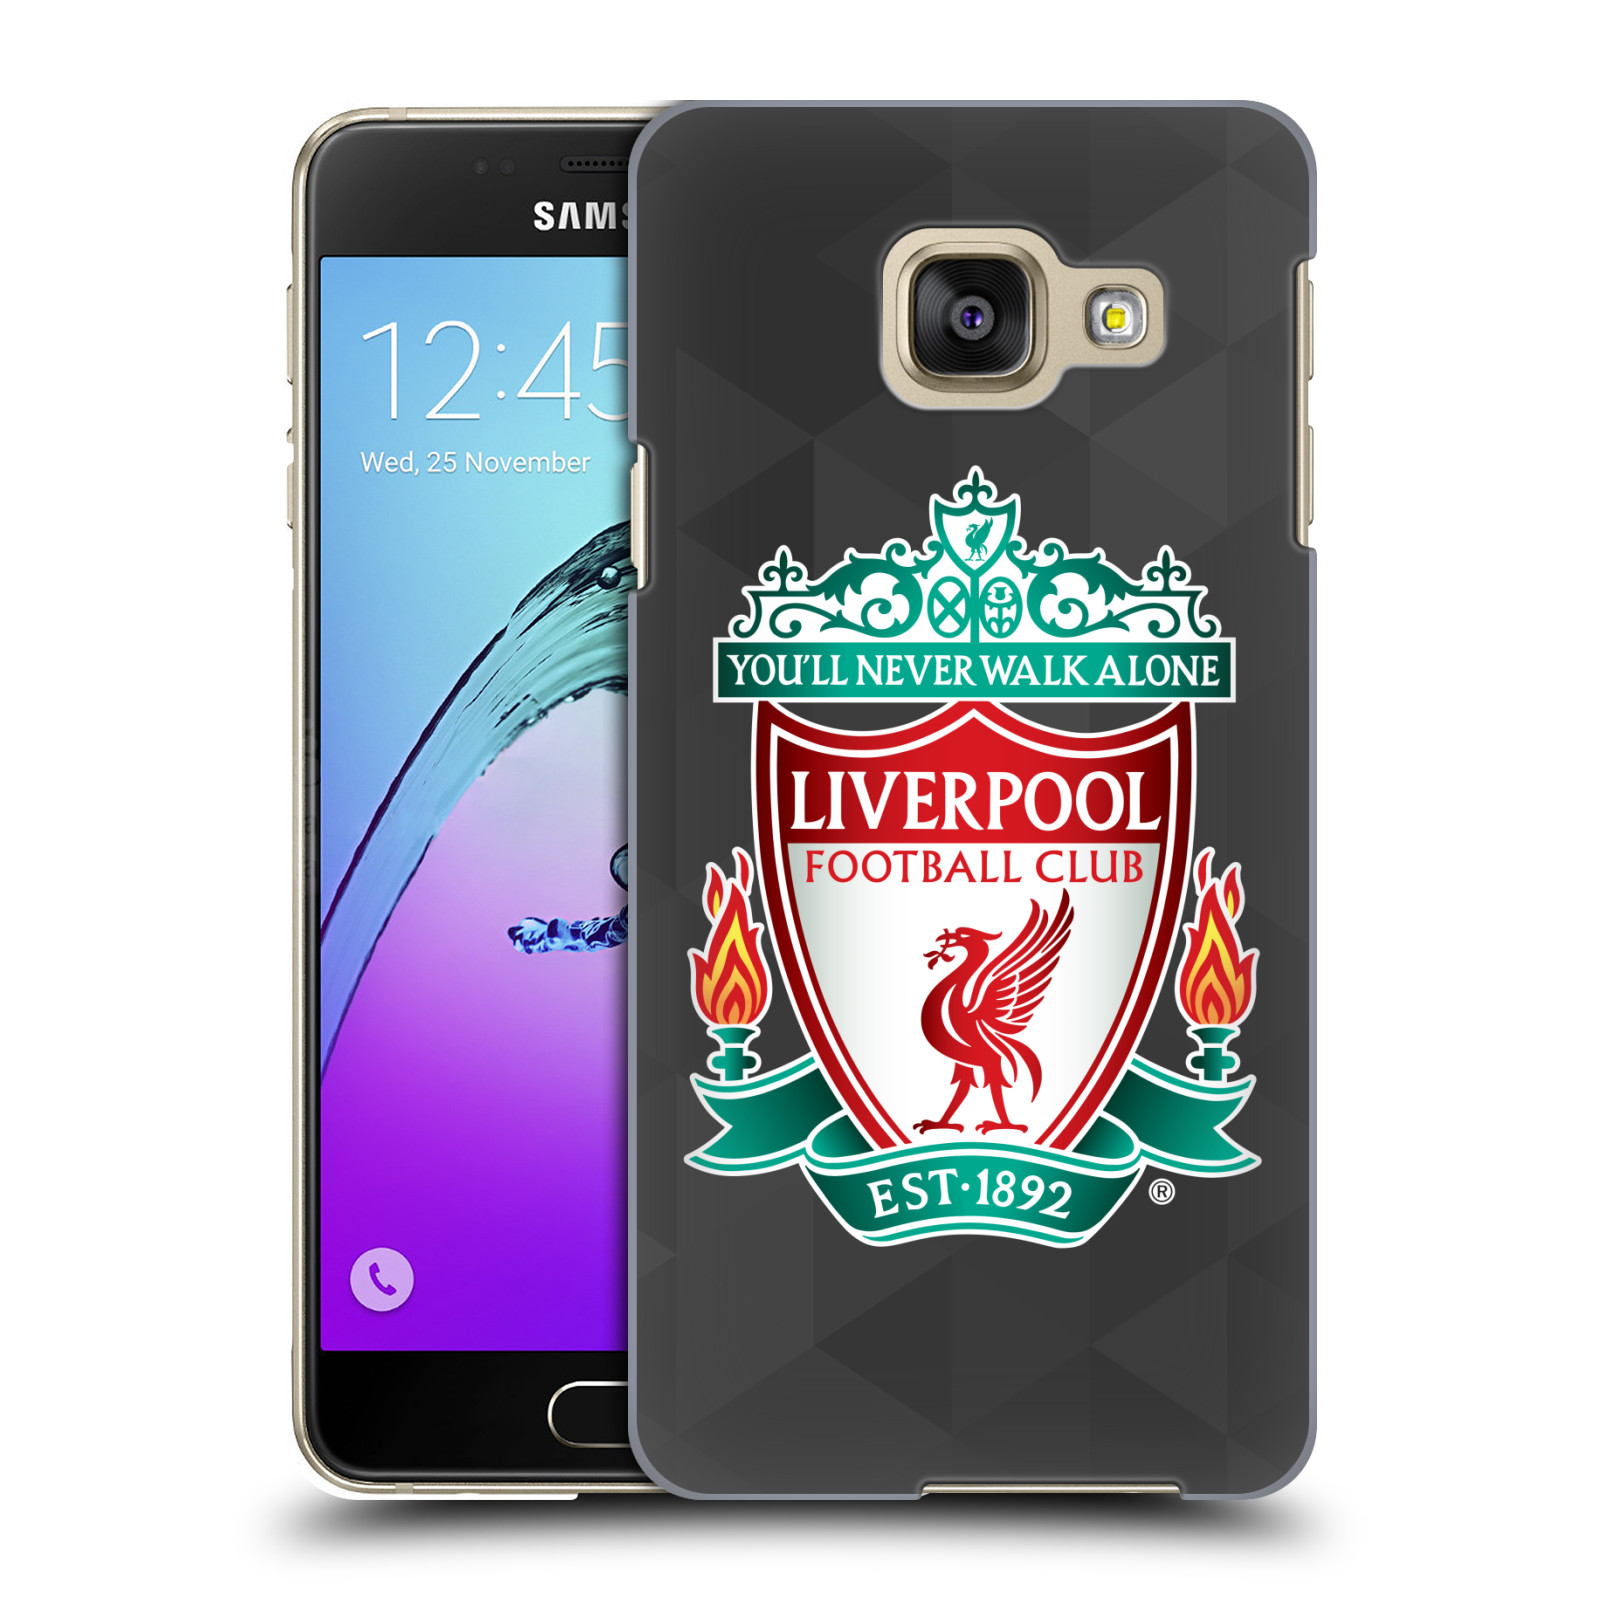 Plastové pouzdro na mobil Samsung Galaxy A3 (2016) HEAD CASE ZNAK LIVERPOOL FC OFFICIAL GEOMETRIC BLACK